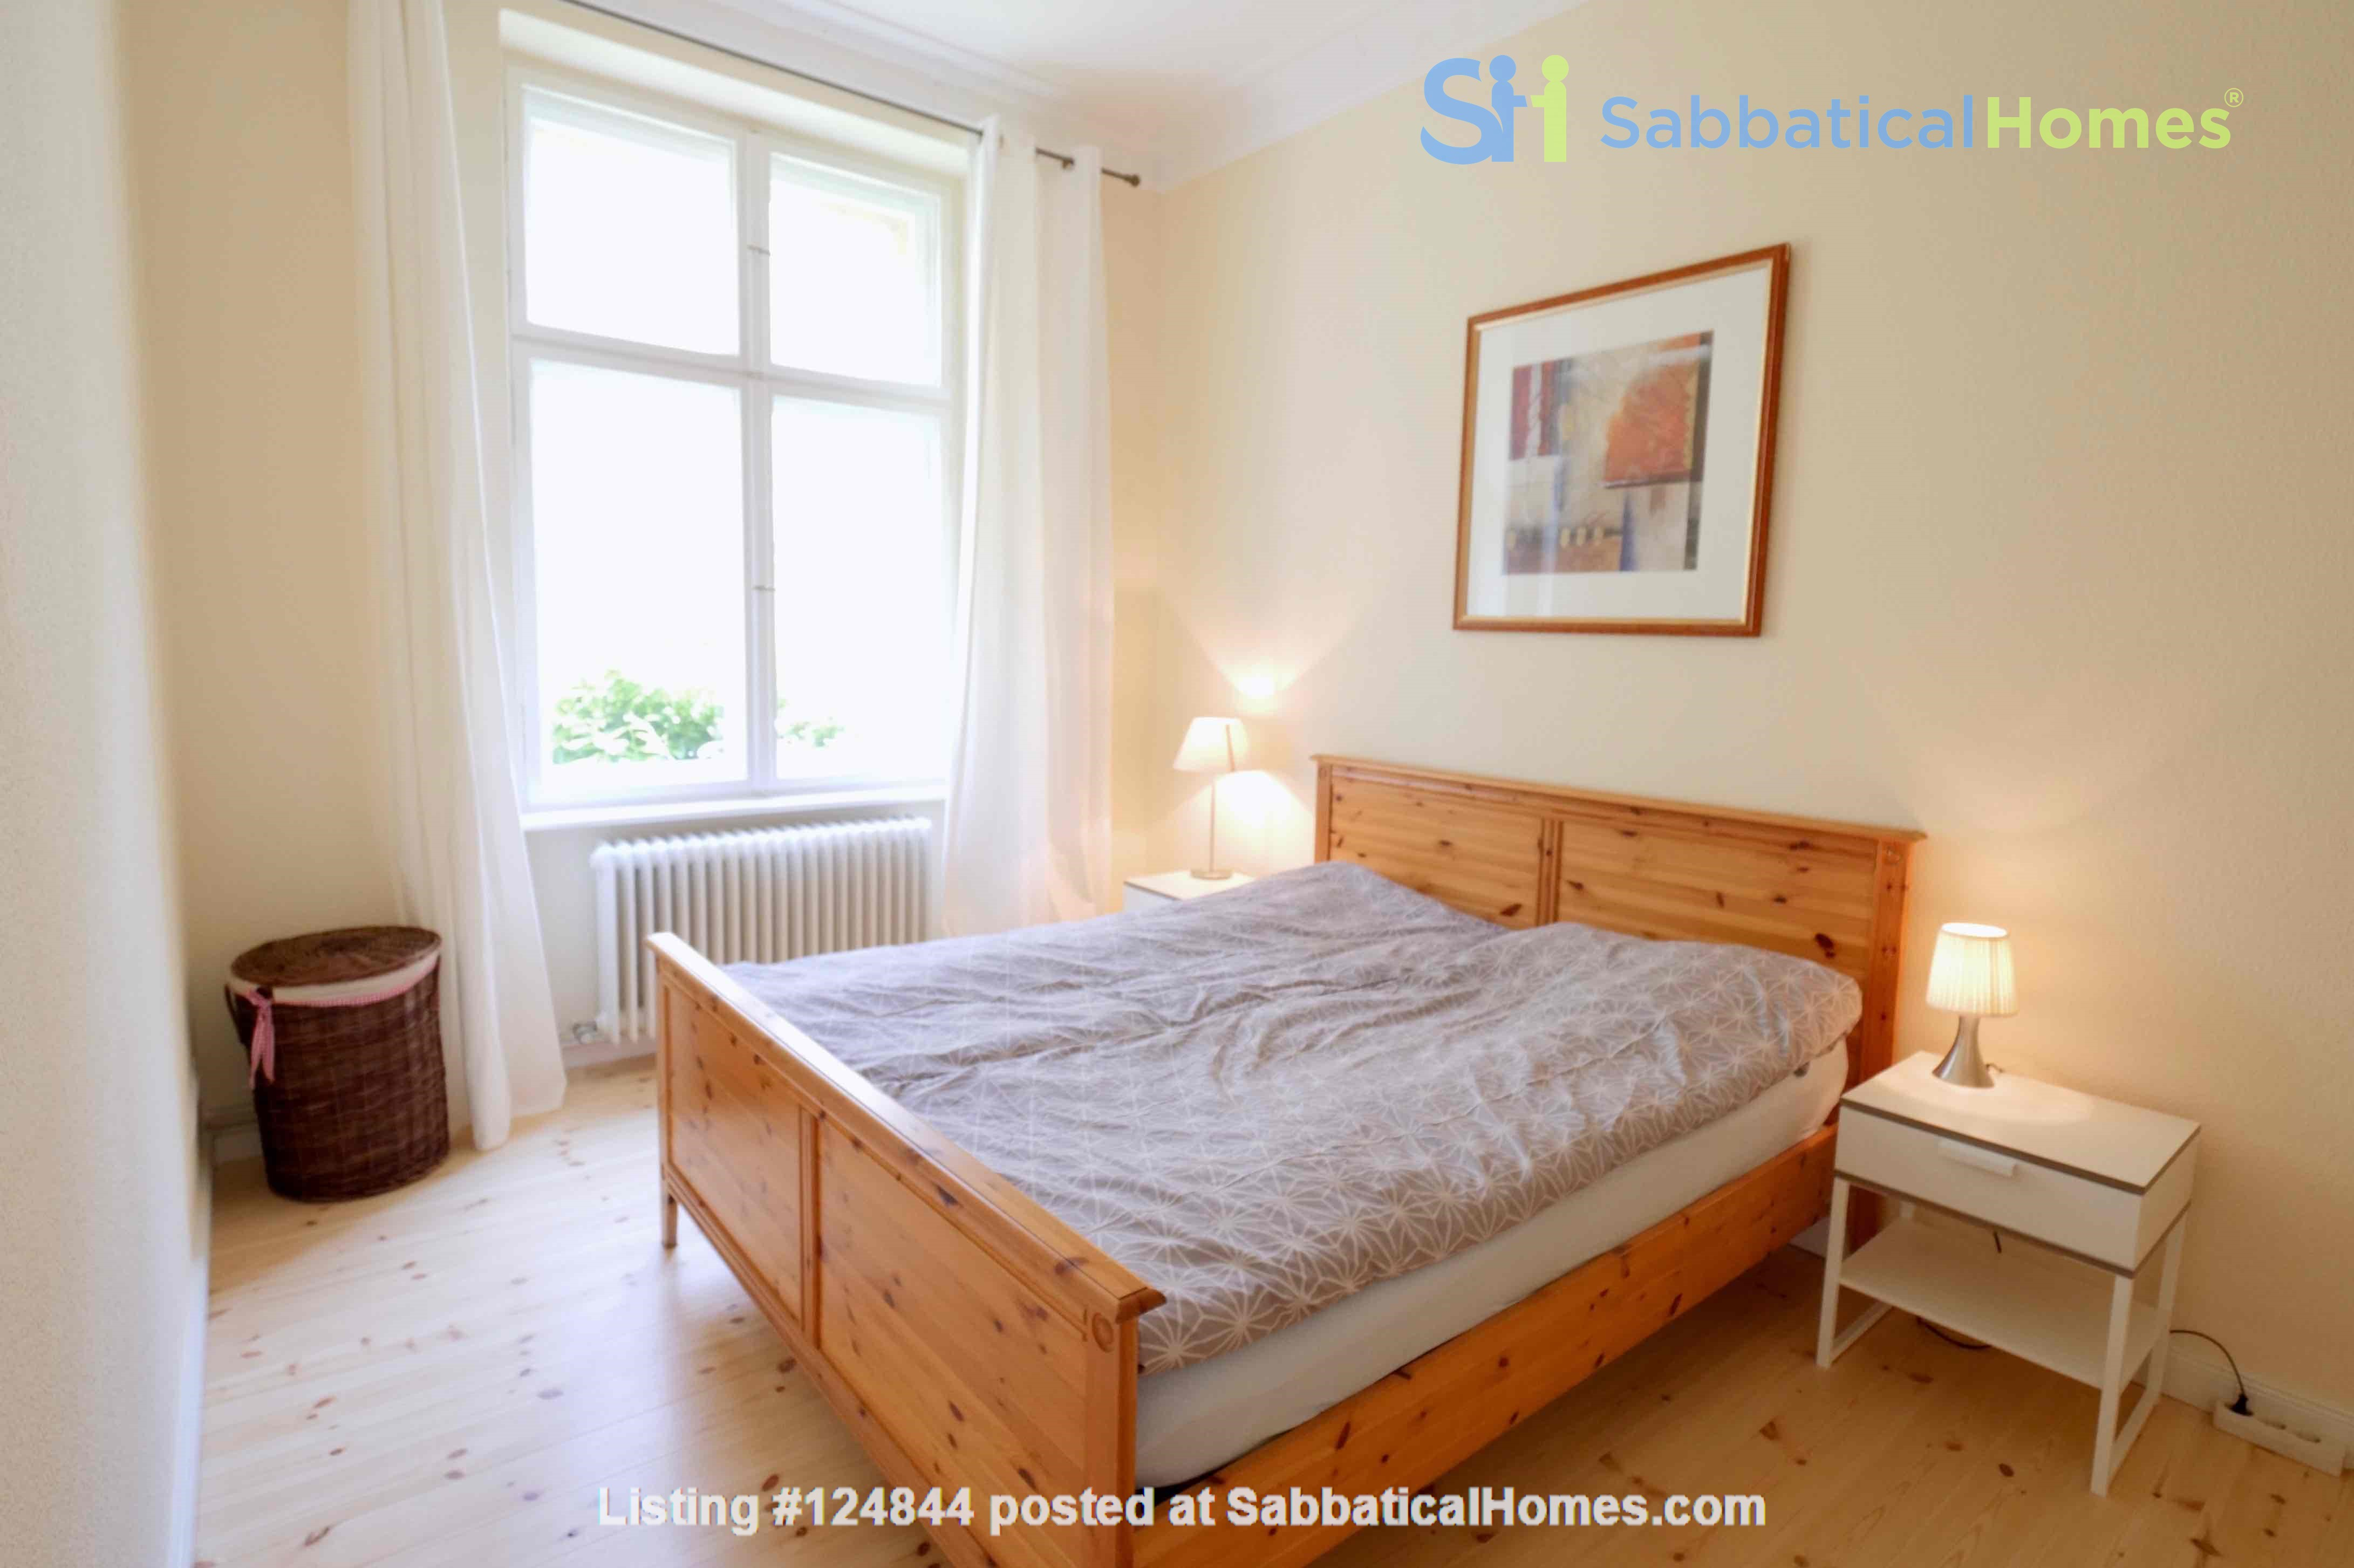 Charming 2-room apartment with balcony and fireplace Home Rental in Berlin, Berlin, Germany 4